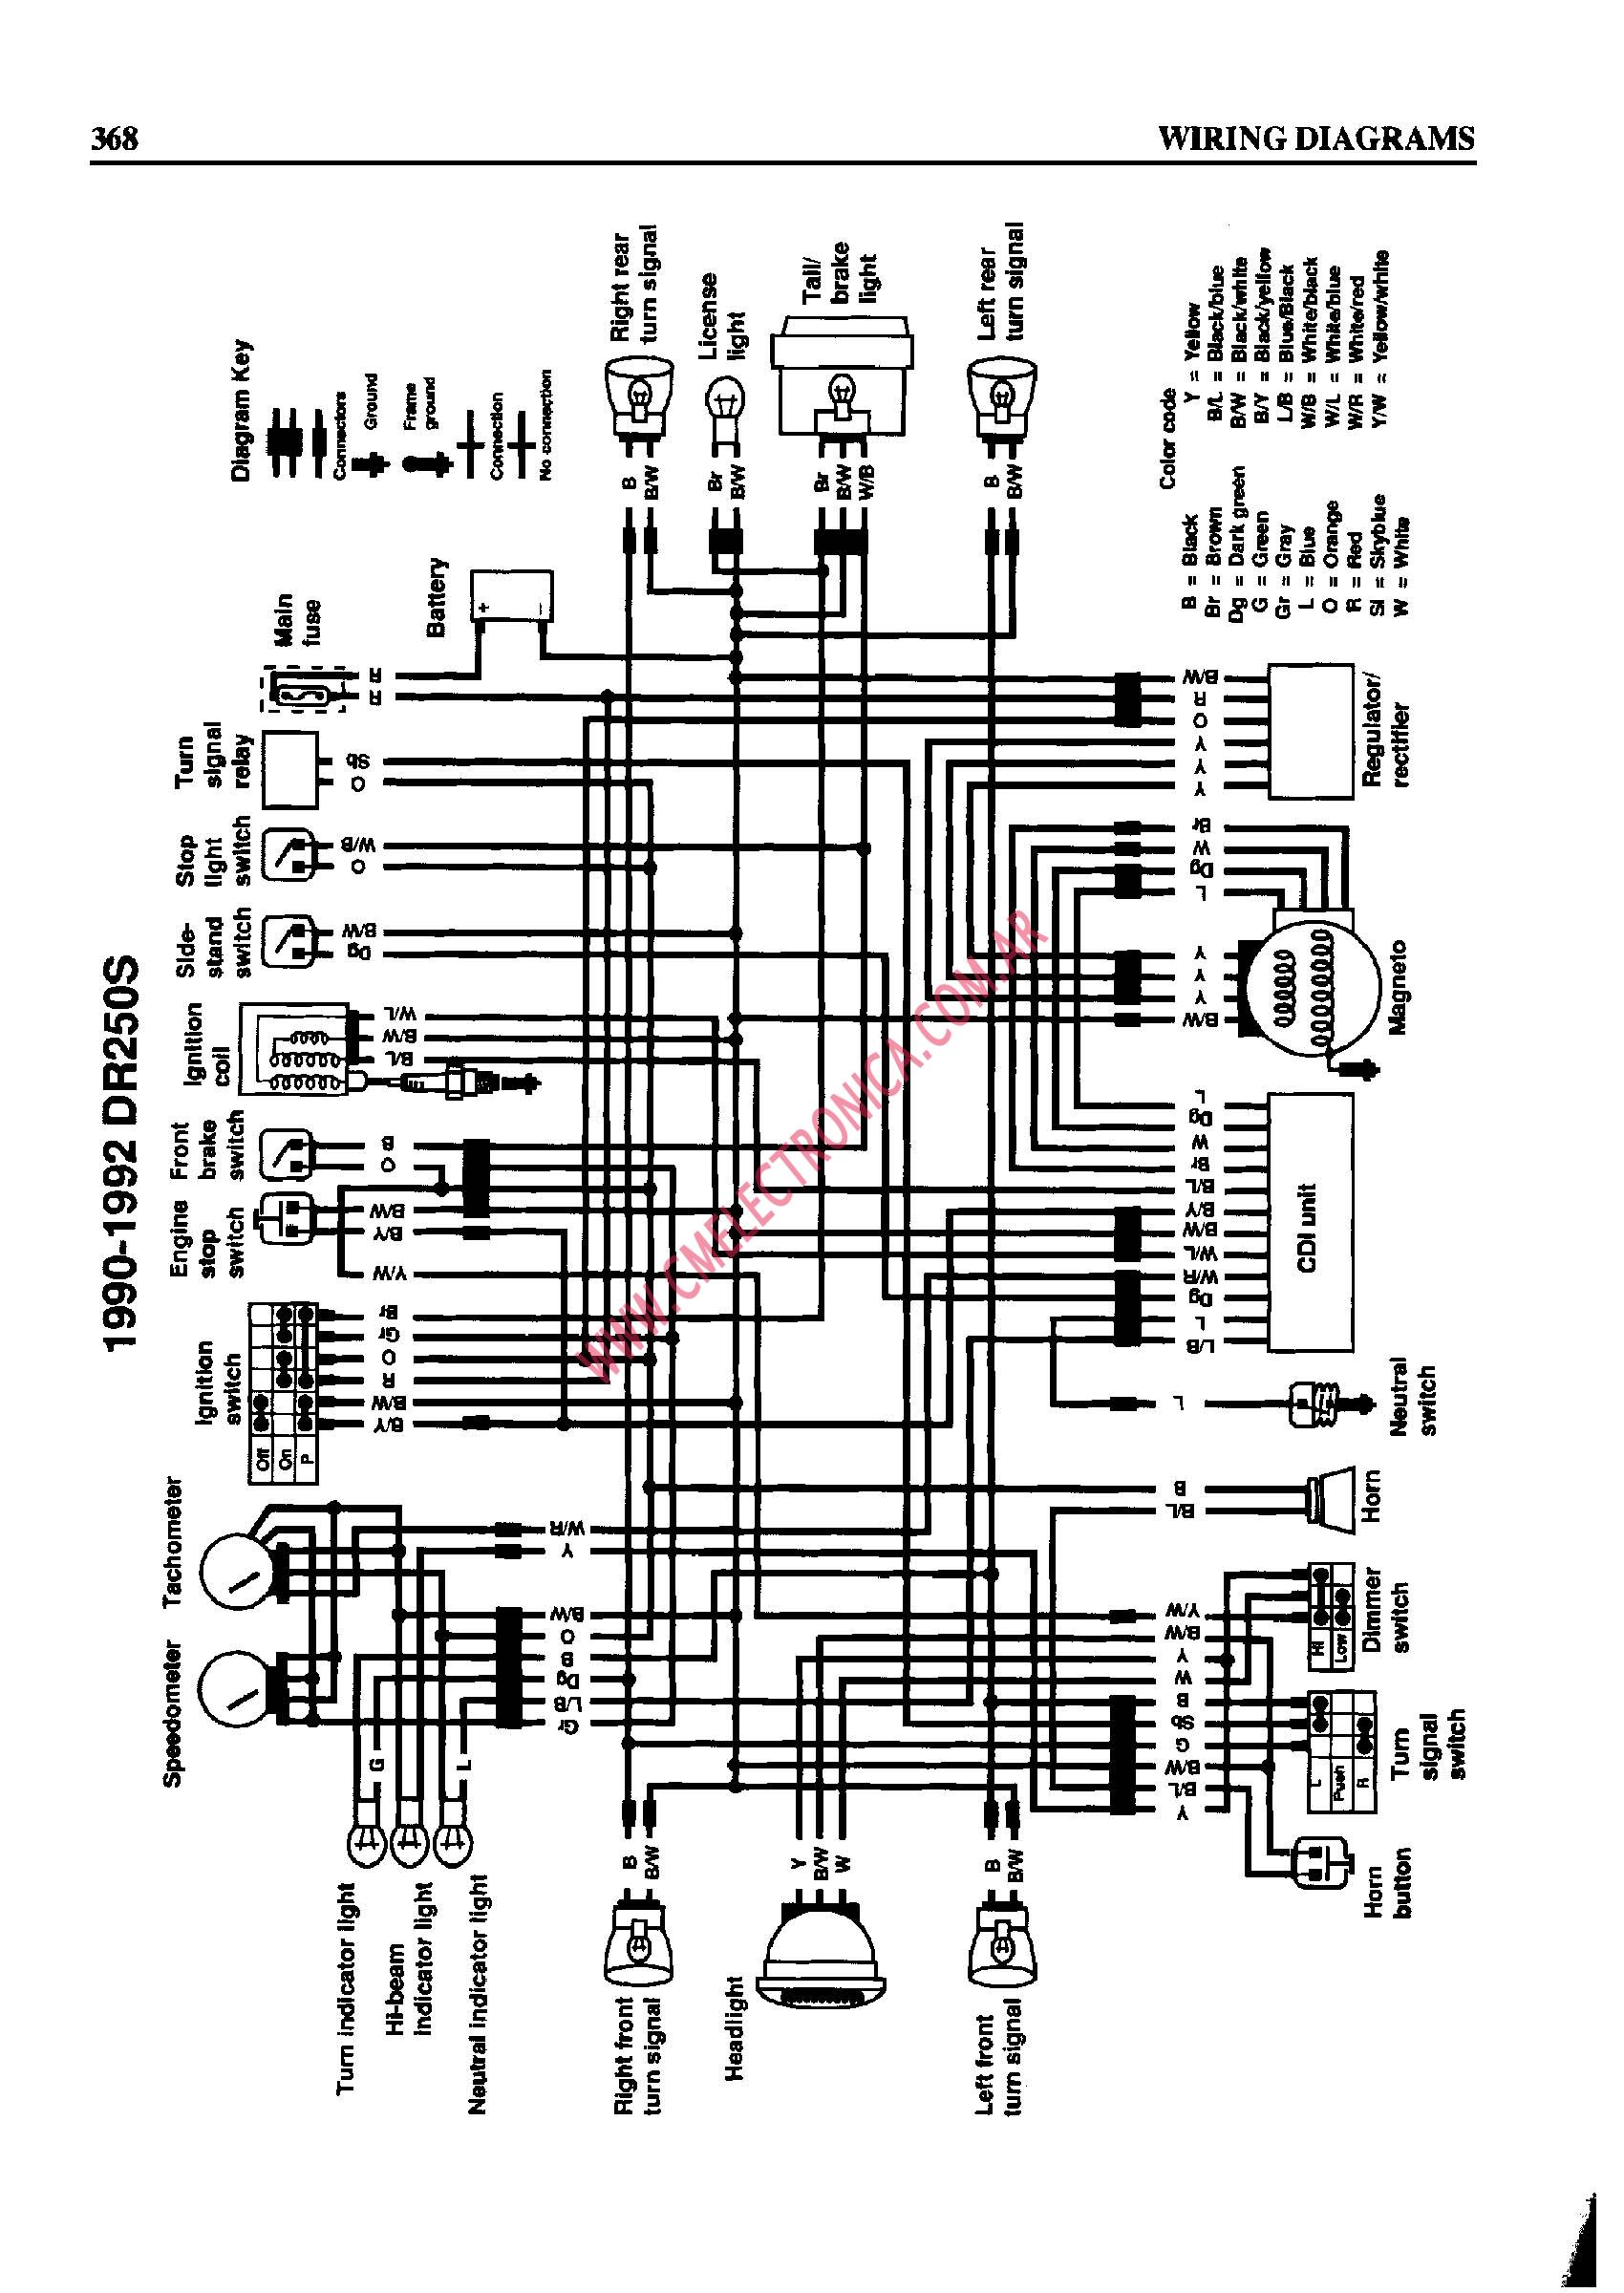 hight resolution of suzuki 250 wiring diagram